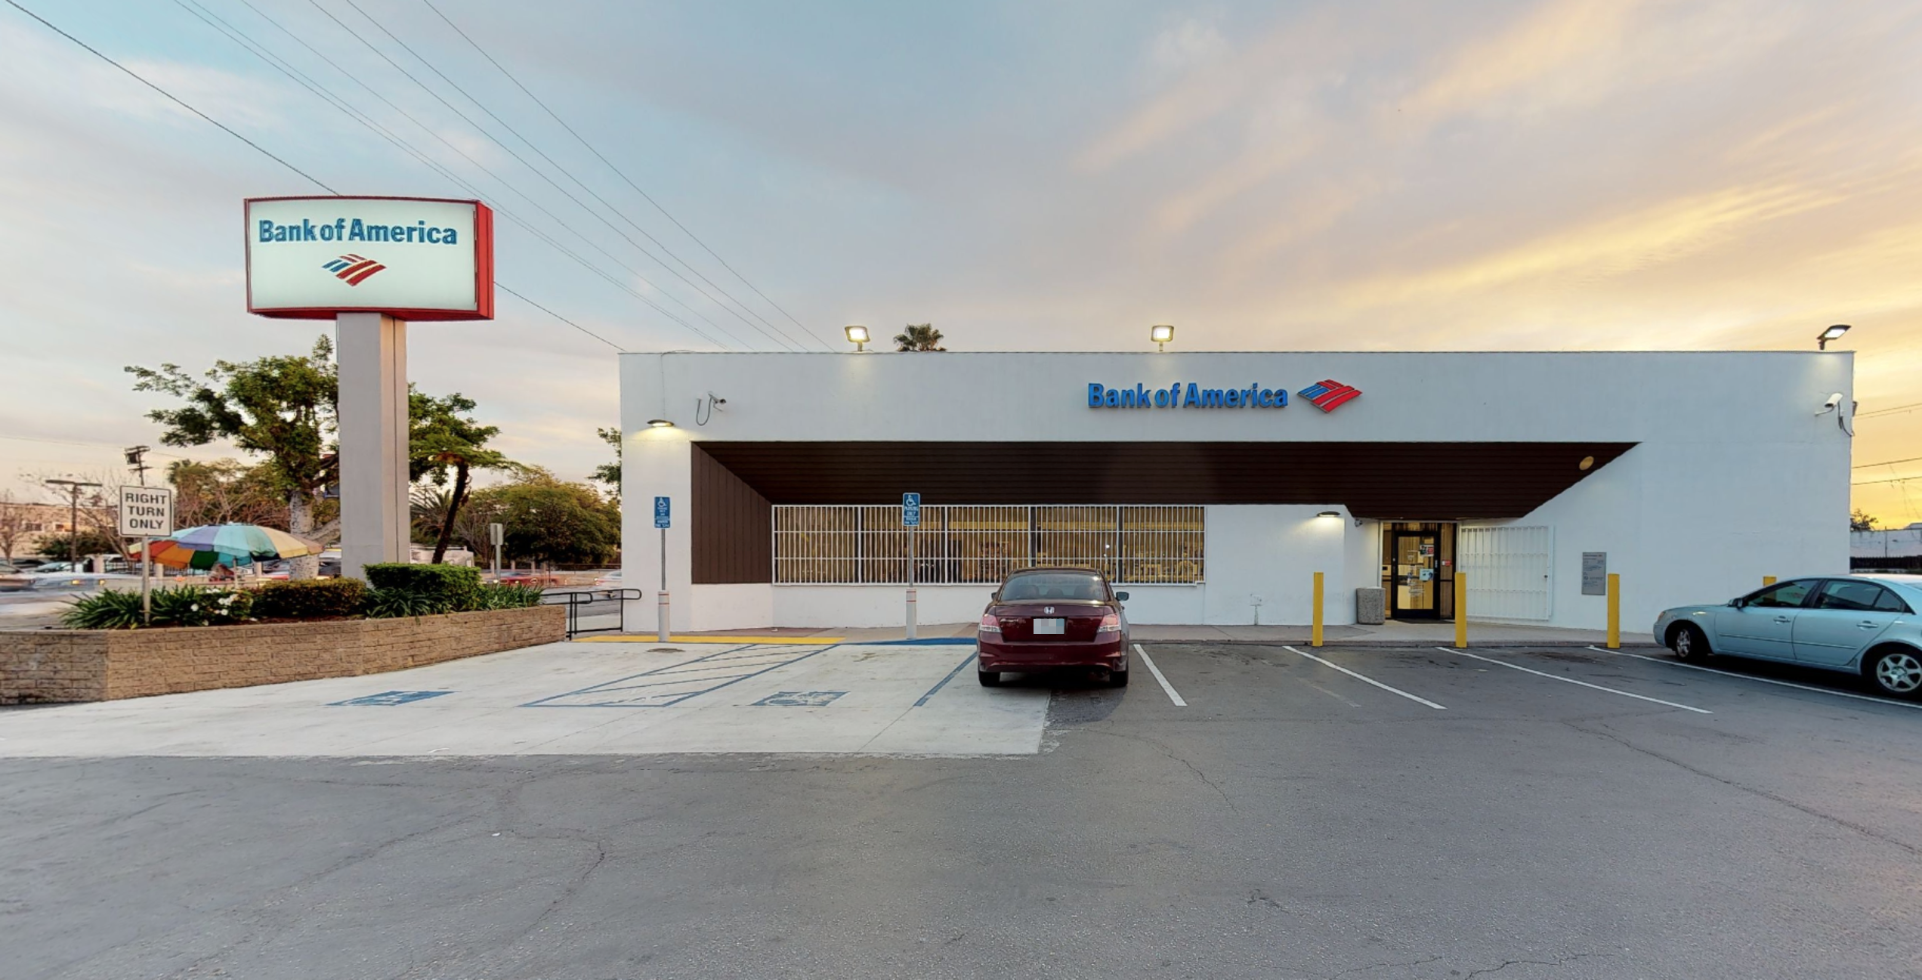 Bank of America financial center with drive-thru ATM   2907 Crenshaw Blvd, Los Angeles, CA 90016